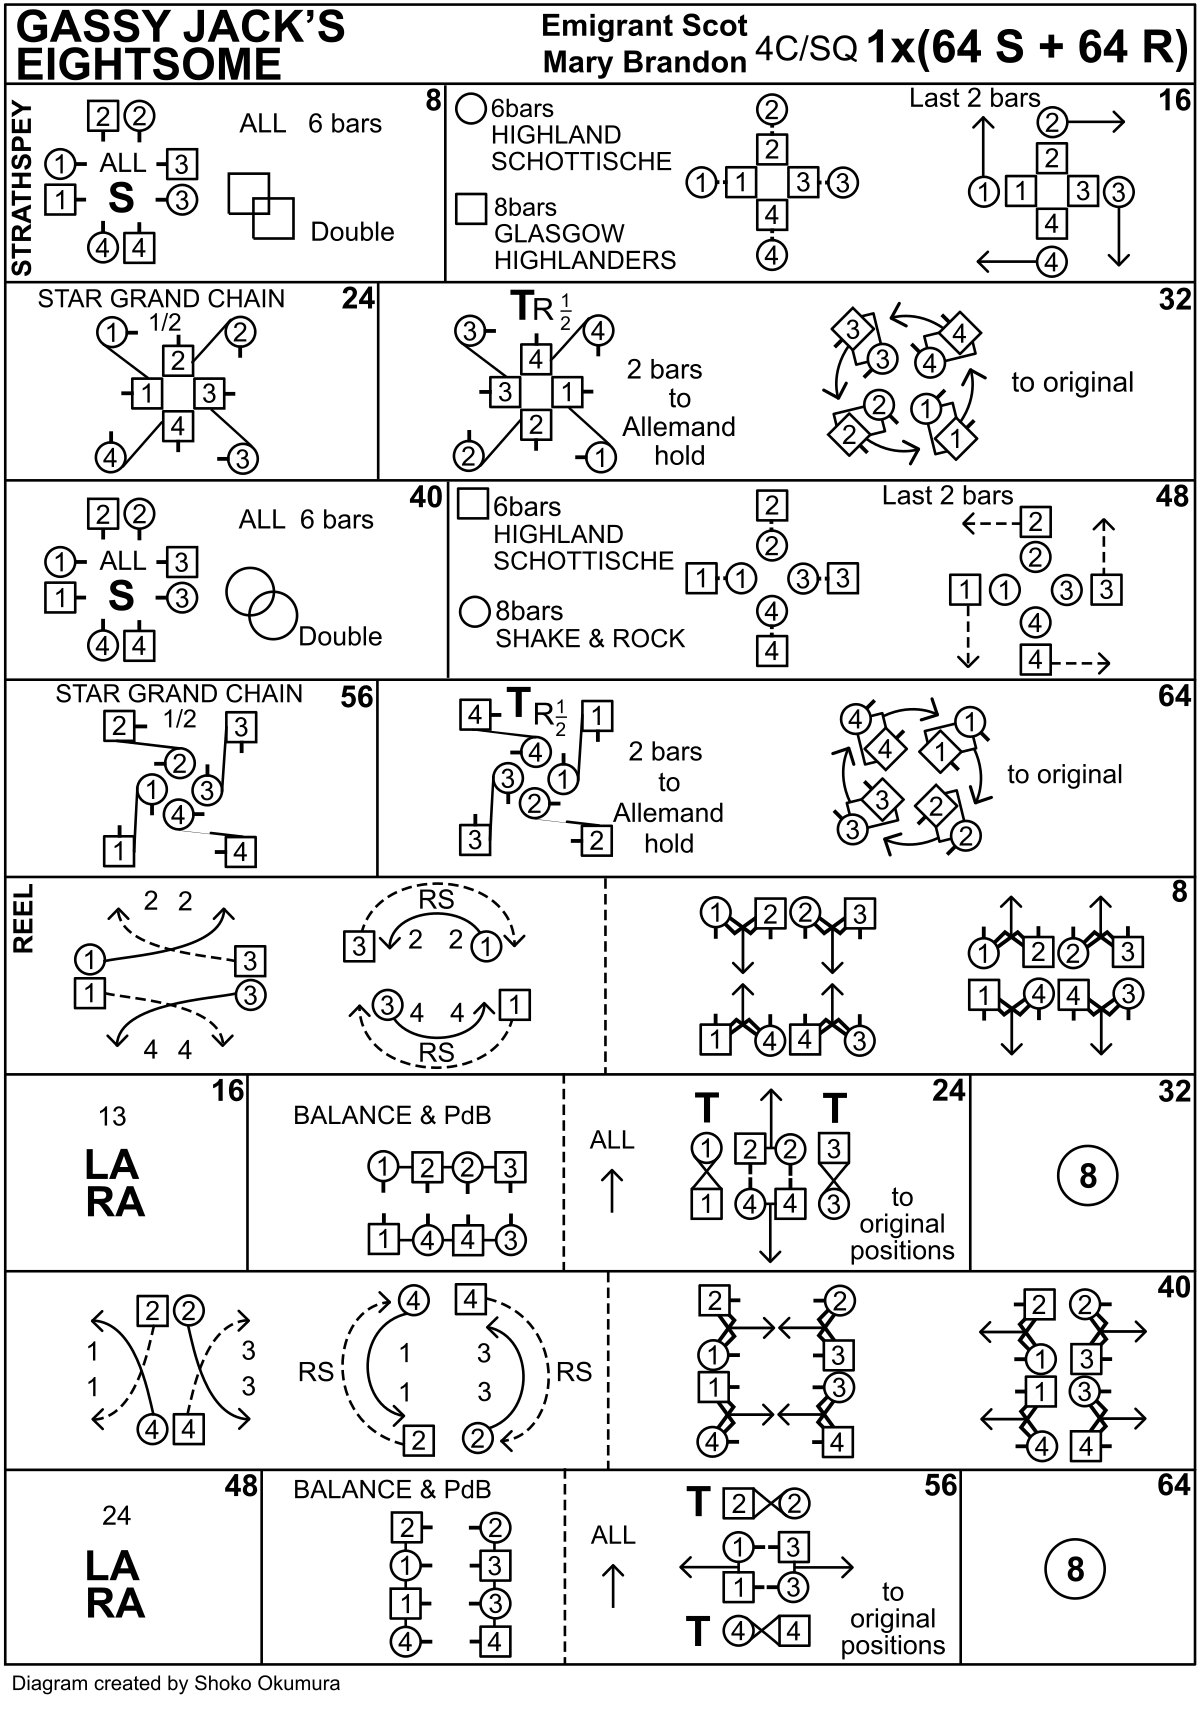 Gassy Jack's Eightsome Keith Rose's Diagram